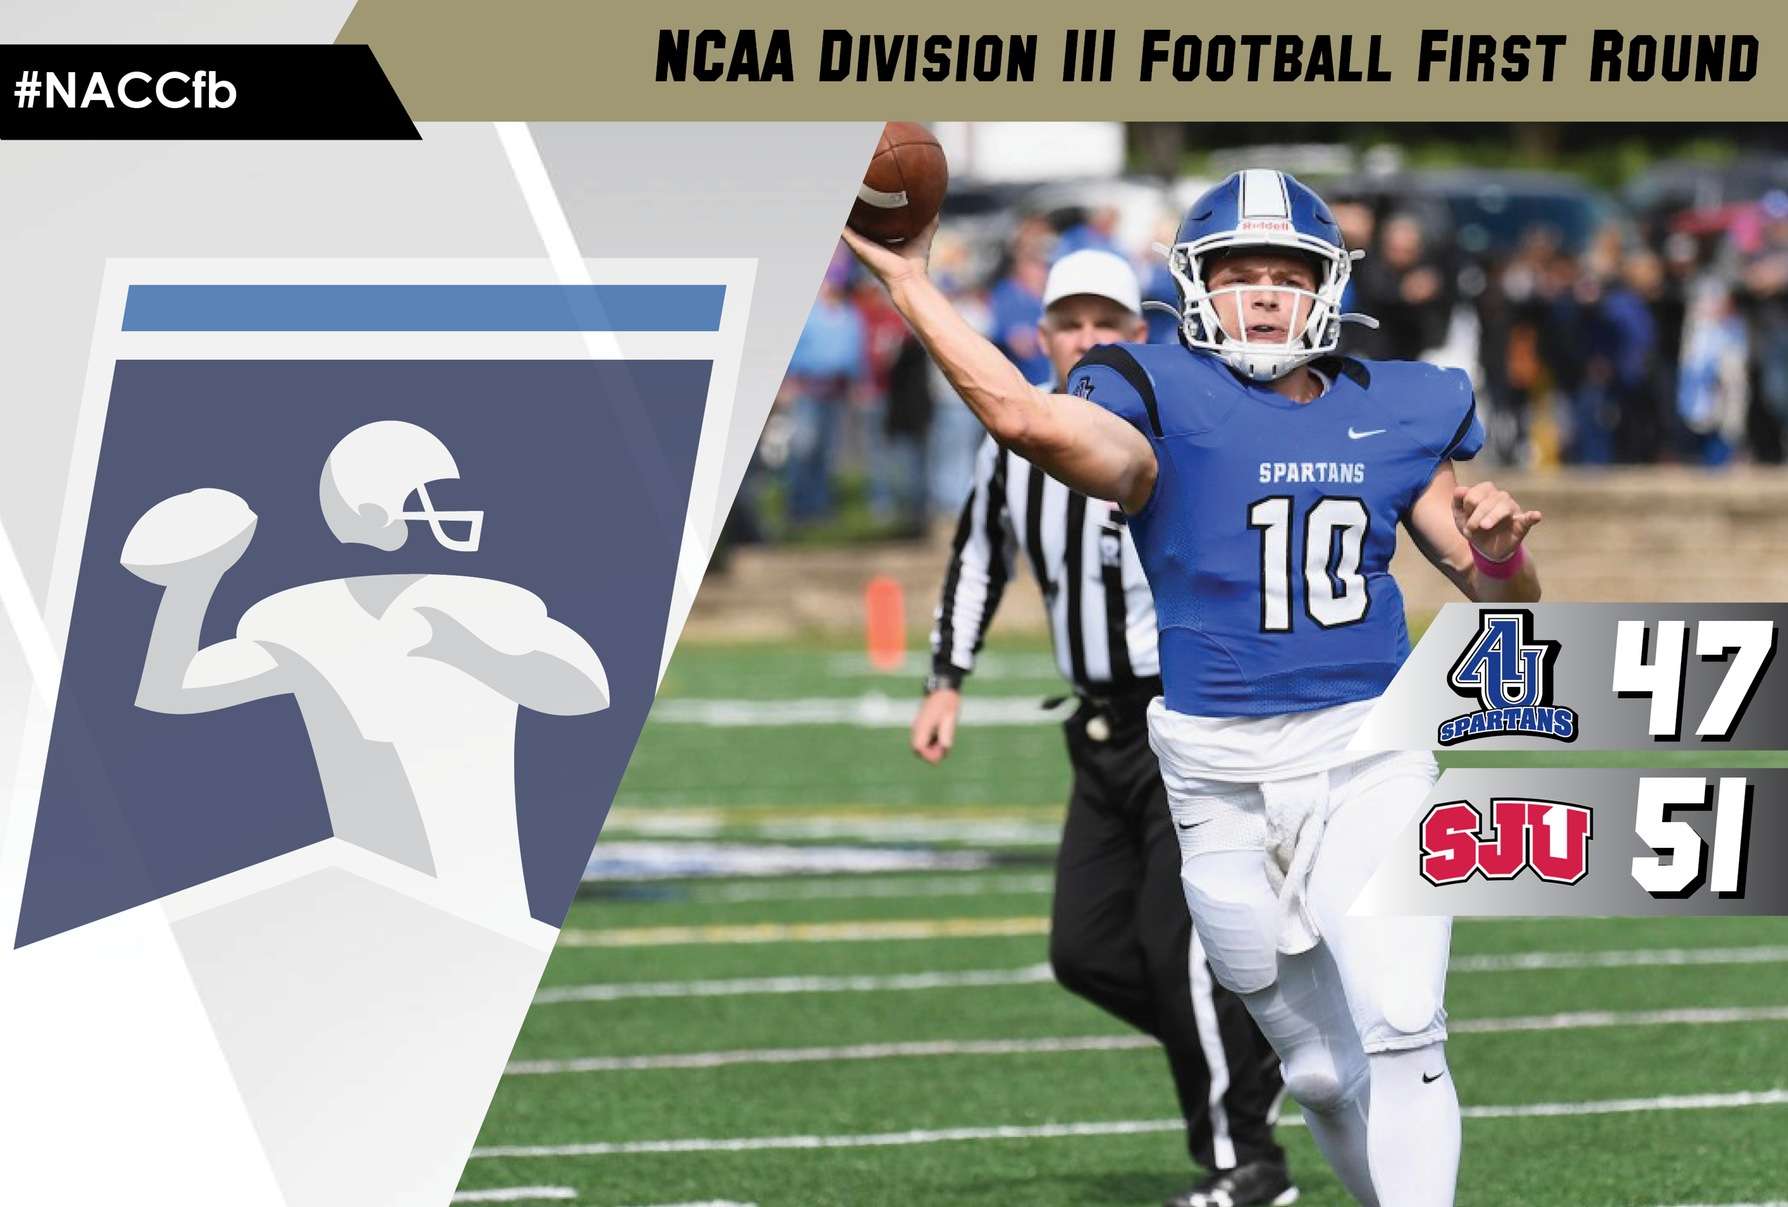 Aurora fell to Saint John's (Minn.), 51-47, Saturday in the first round of the 2019 NCAA Division III Football Championship.